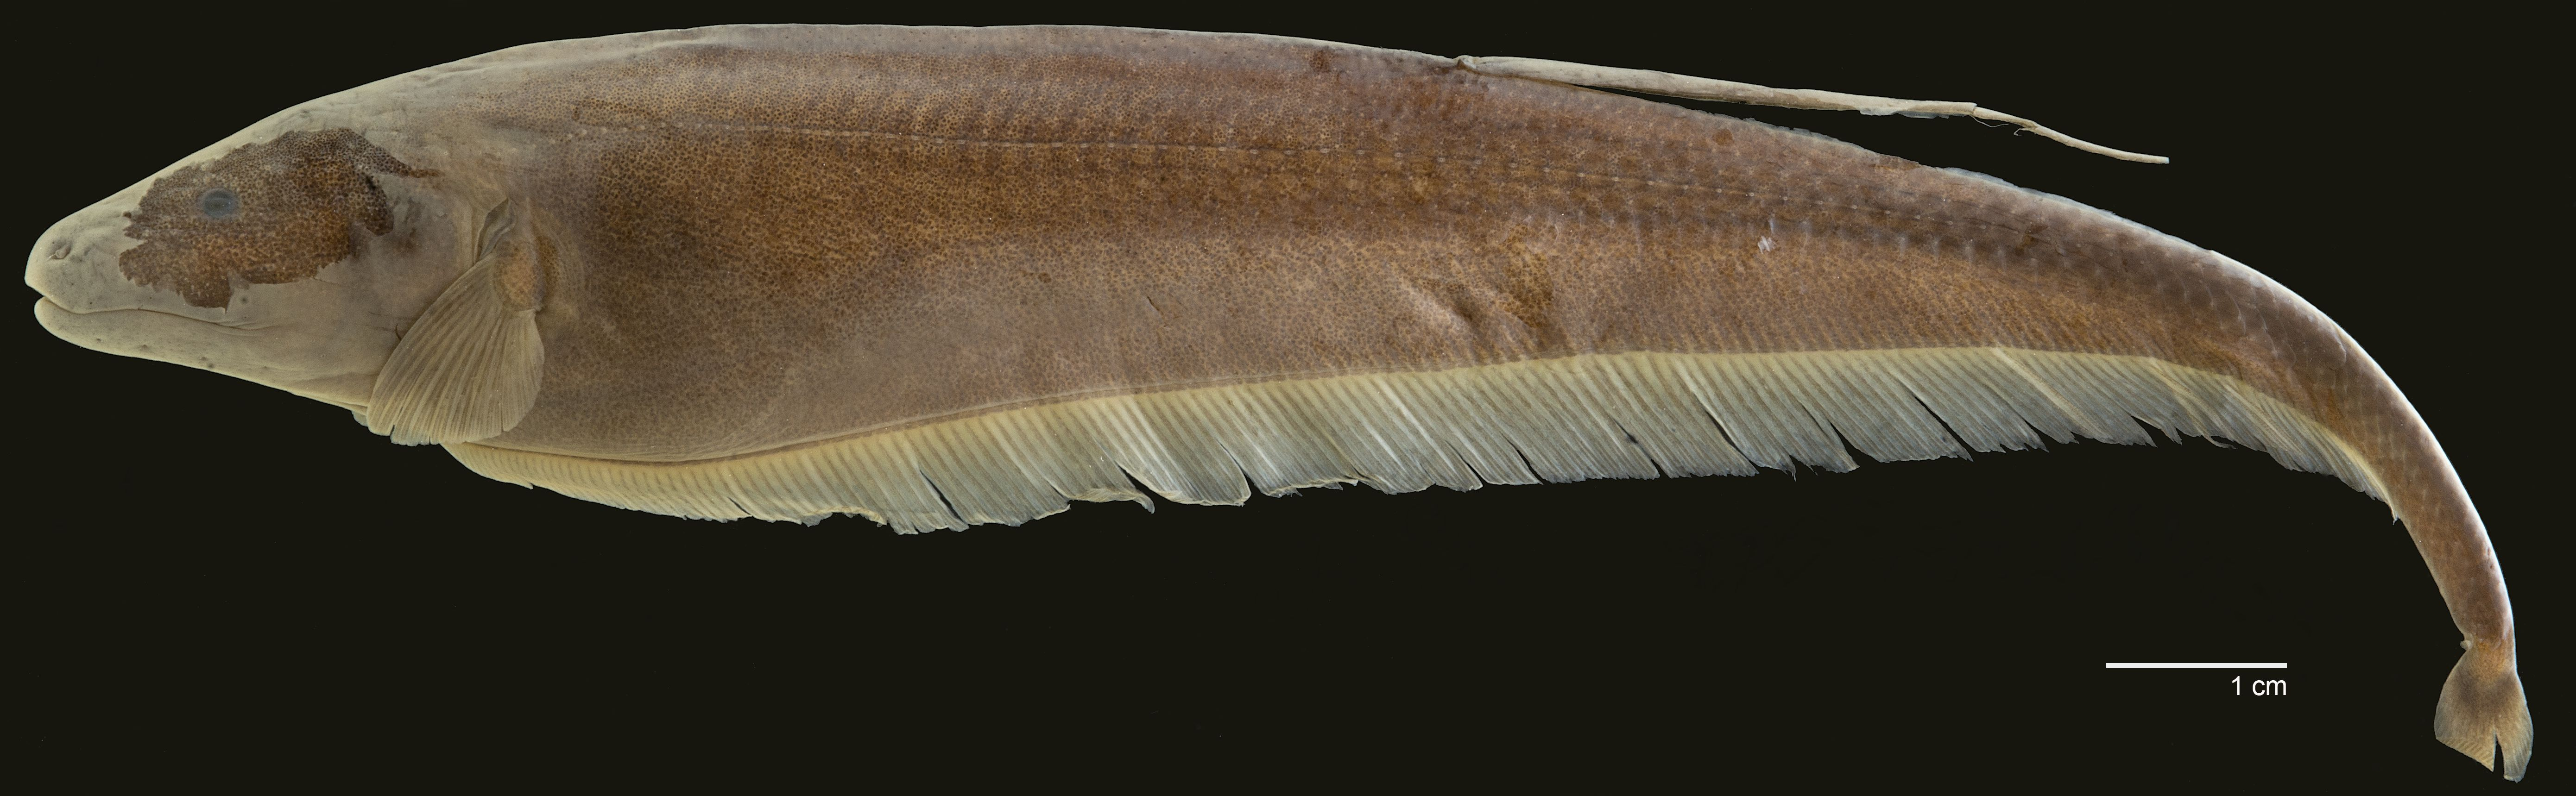 Holotype of <em>Apteronotus milesi</em>, IAvH-P-3996_Lateral, 160.4 mm TL (scale bar = 1 cm). Photograph by S. J. Raredon